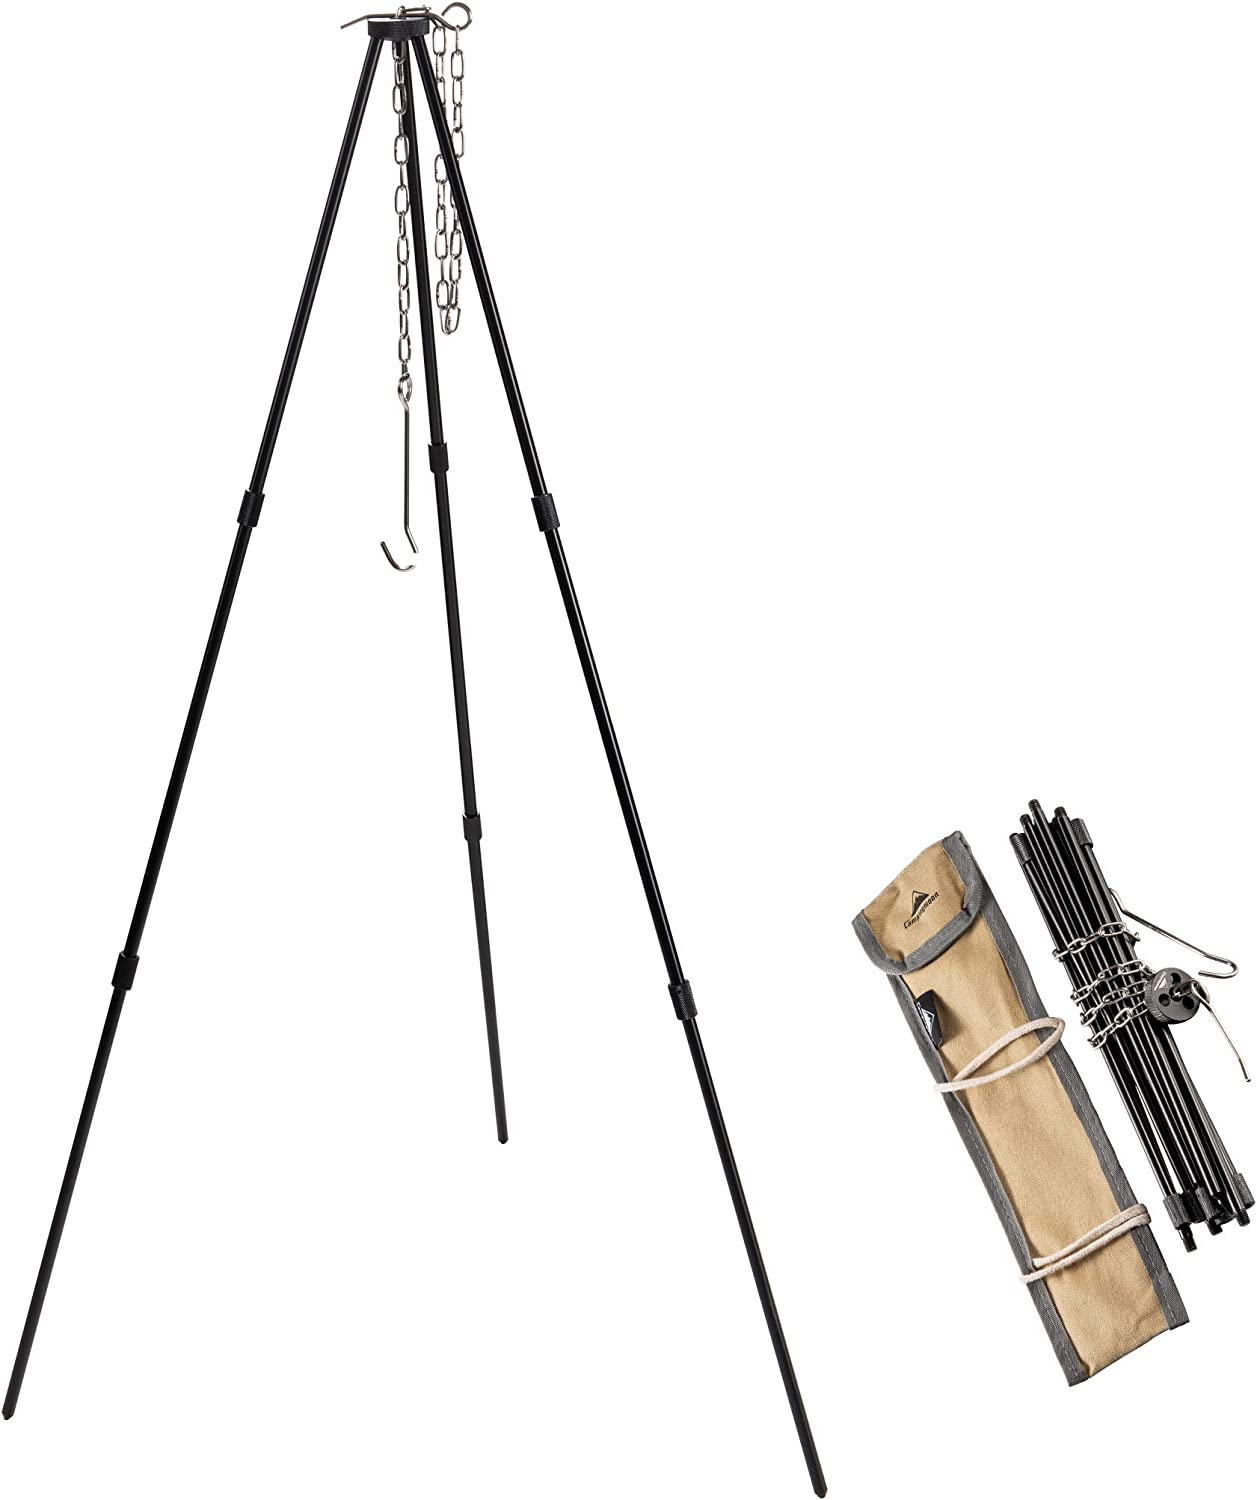 CAMPINGMOON 31.5-inch Height Portable Campfire Camping Tripod Black with Carrying Bag MS-080-BK